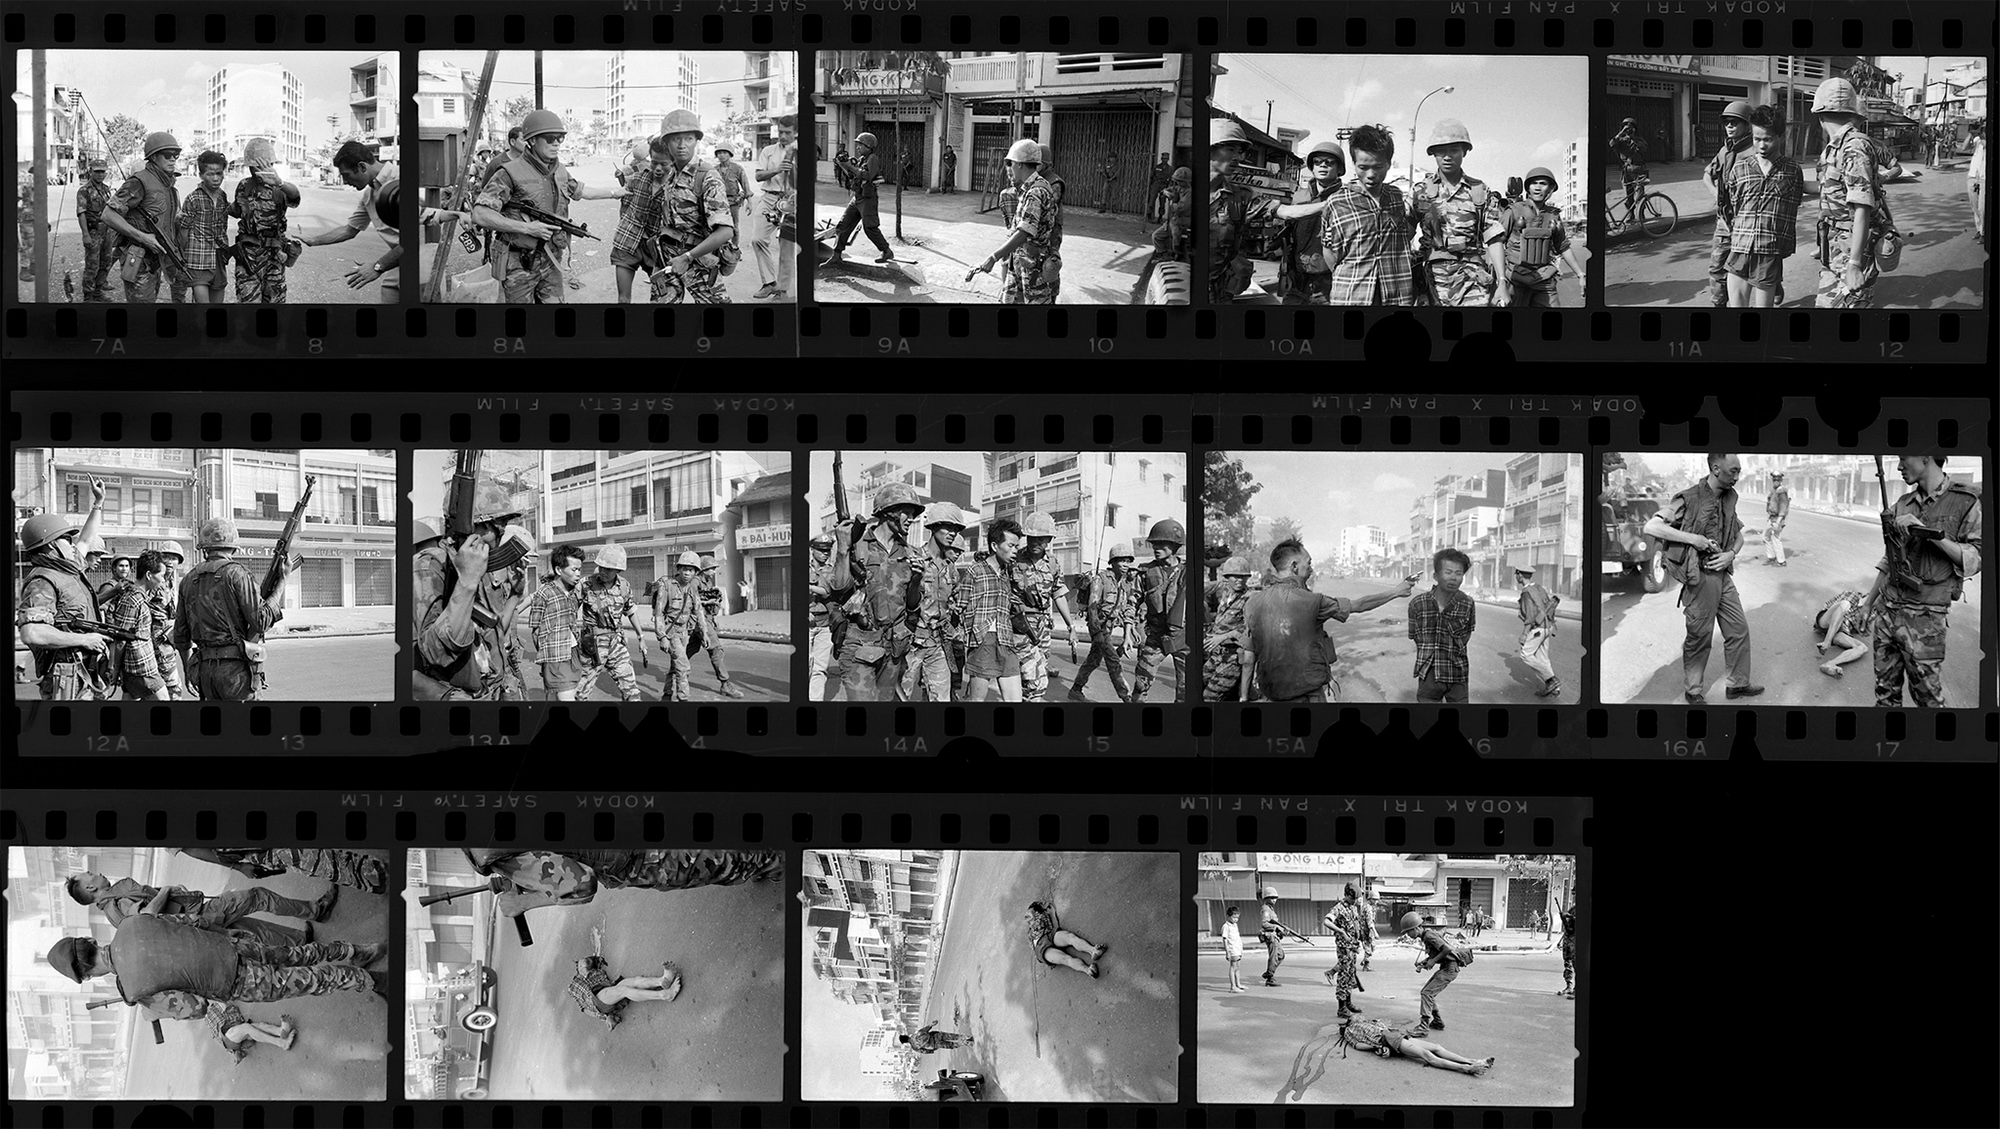 saigon_execution_contact_sheet.jpg